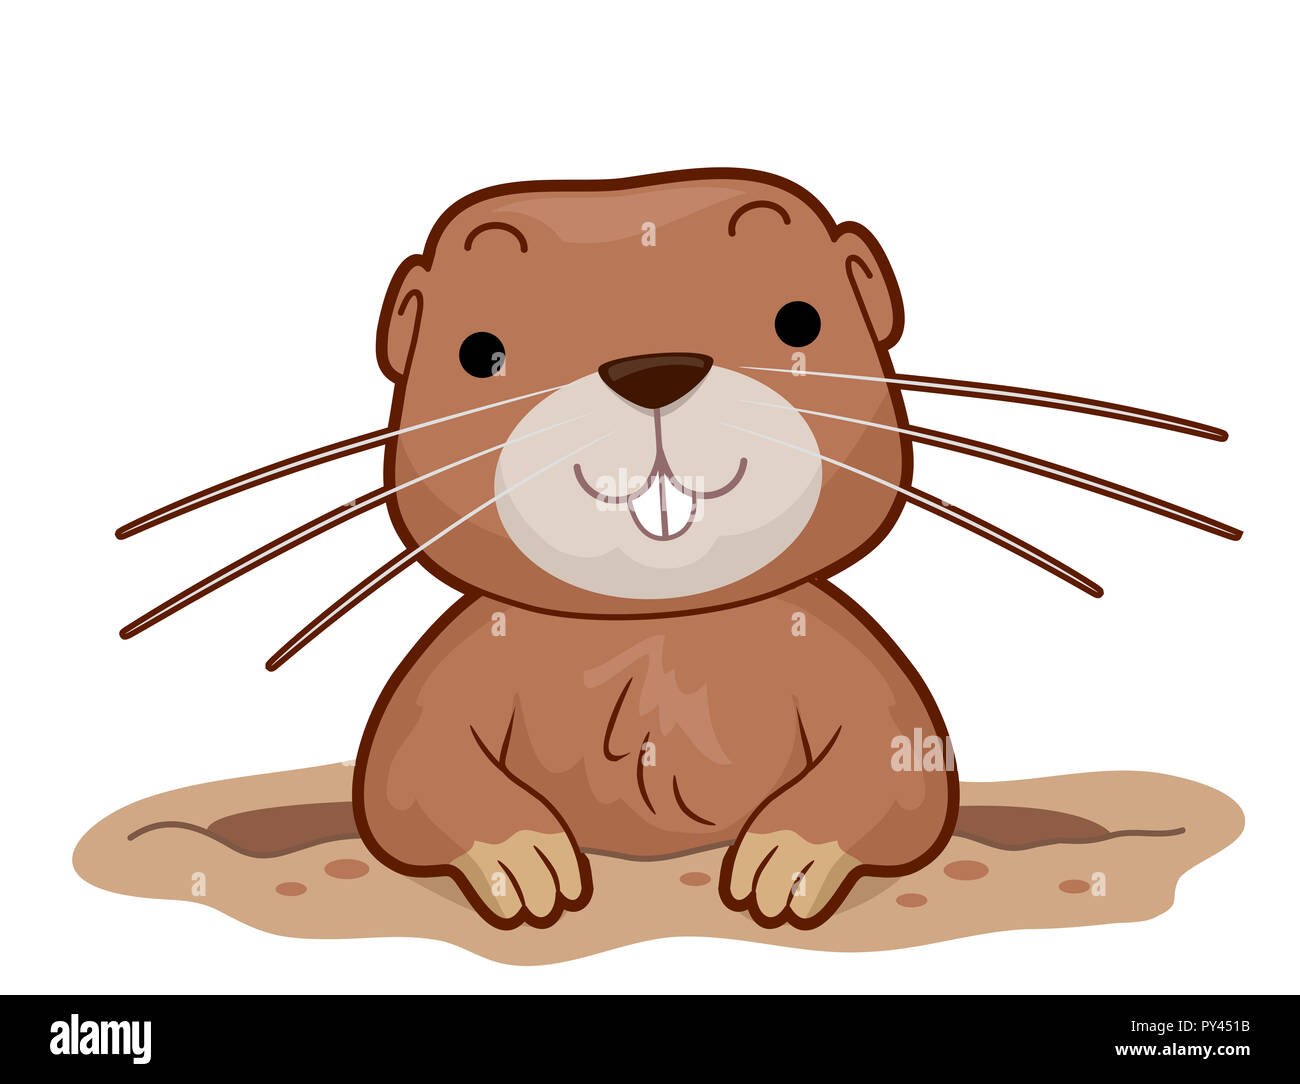 Smiling Gopher Stock Photos & Smiling Gopher Stock Images